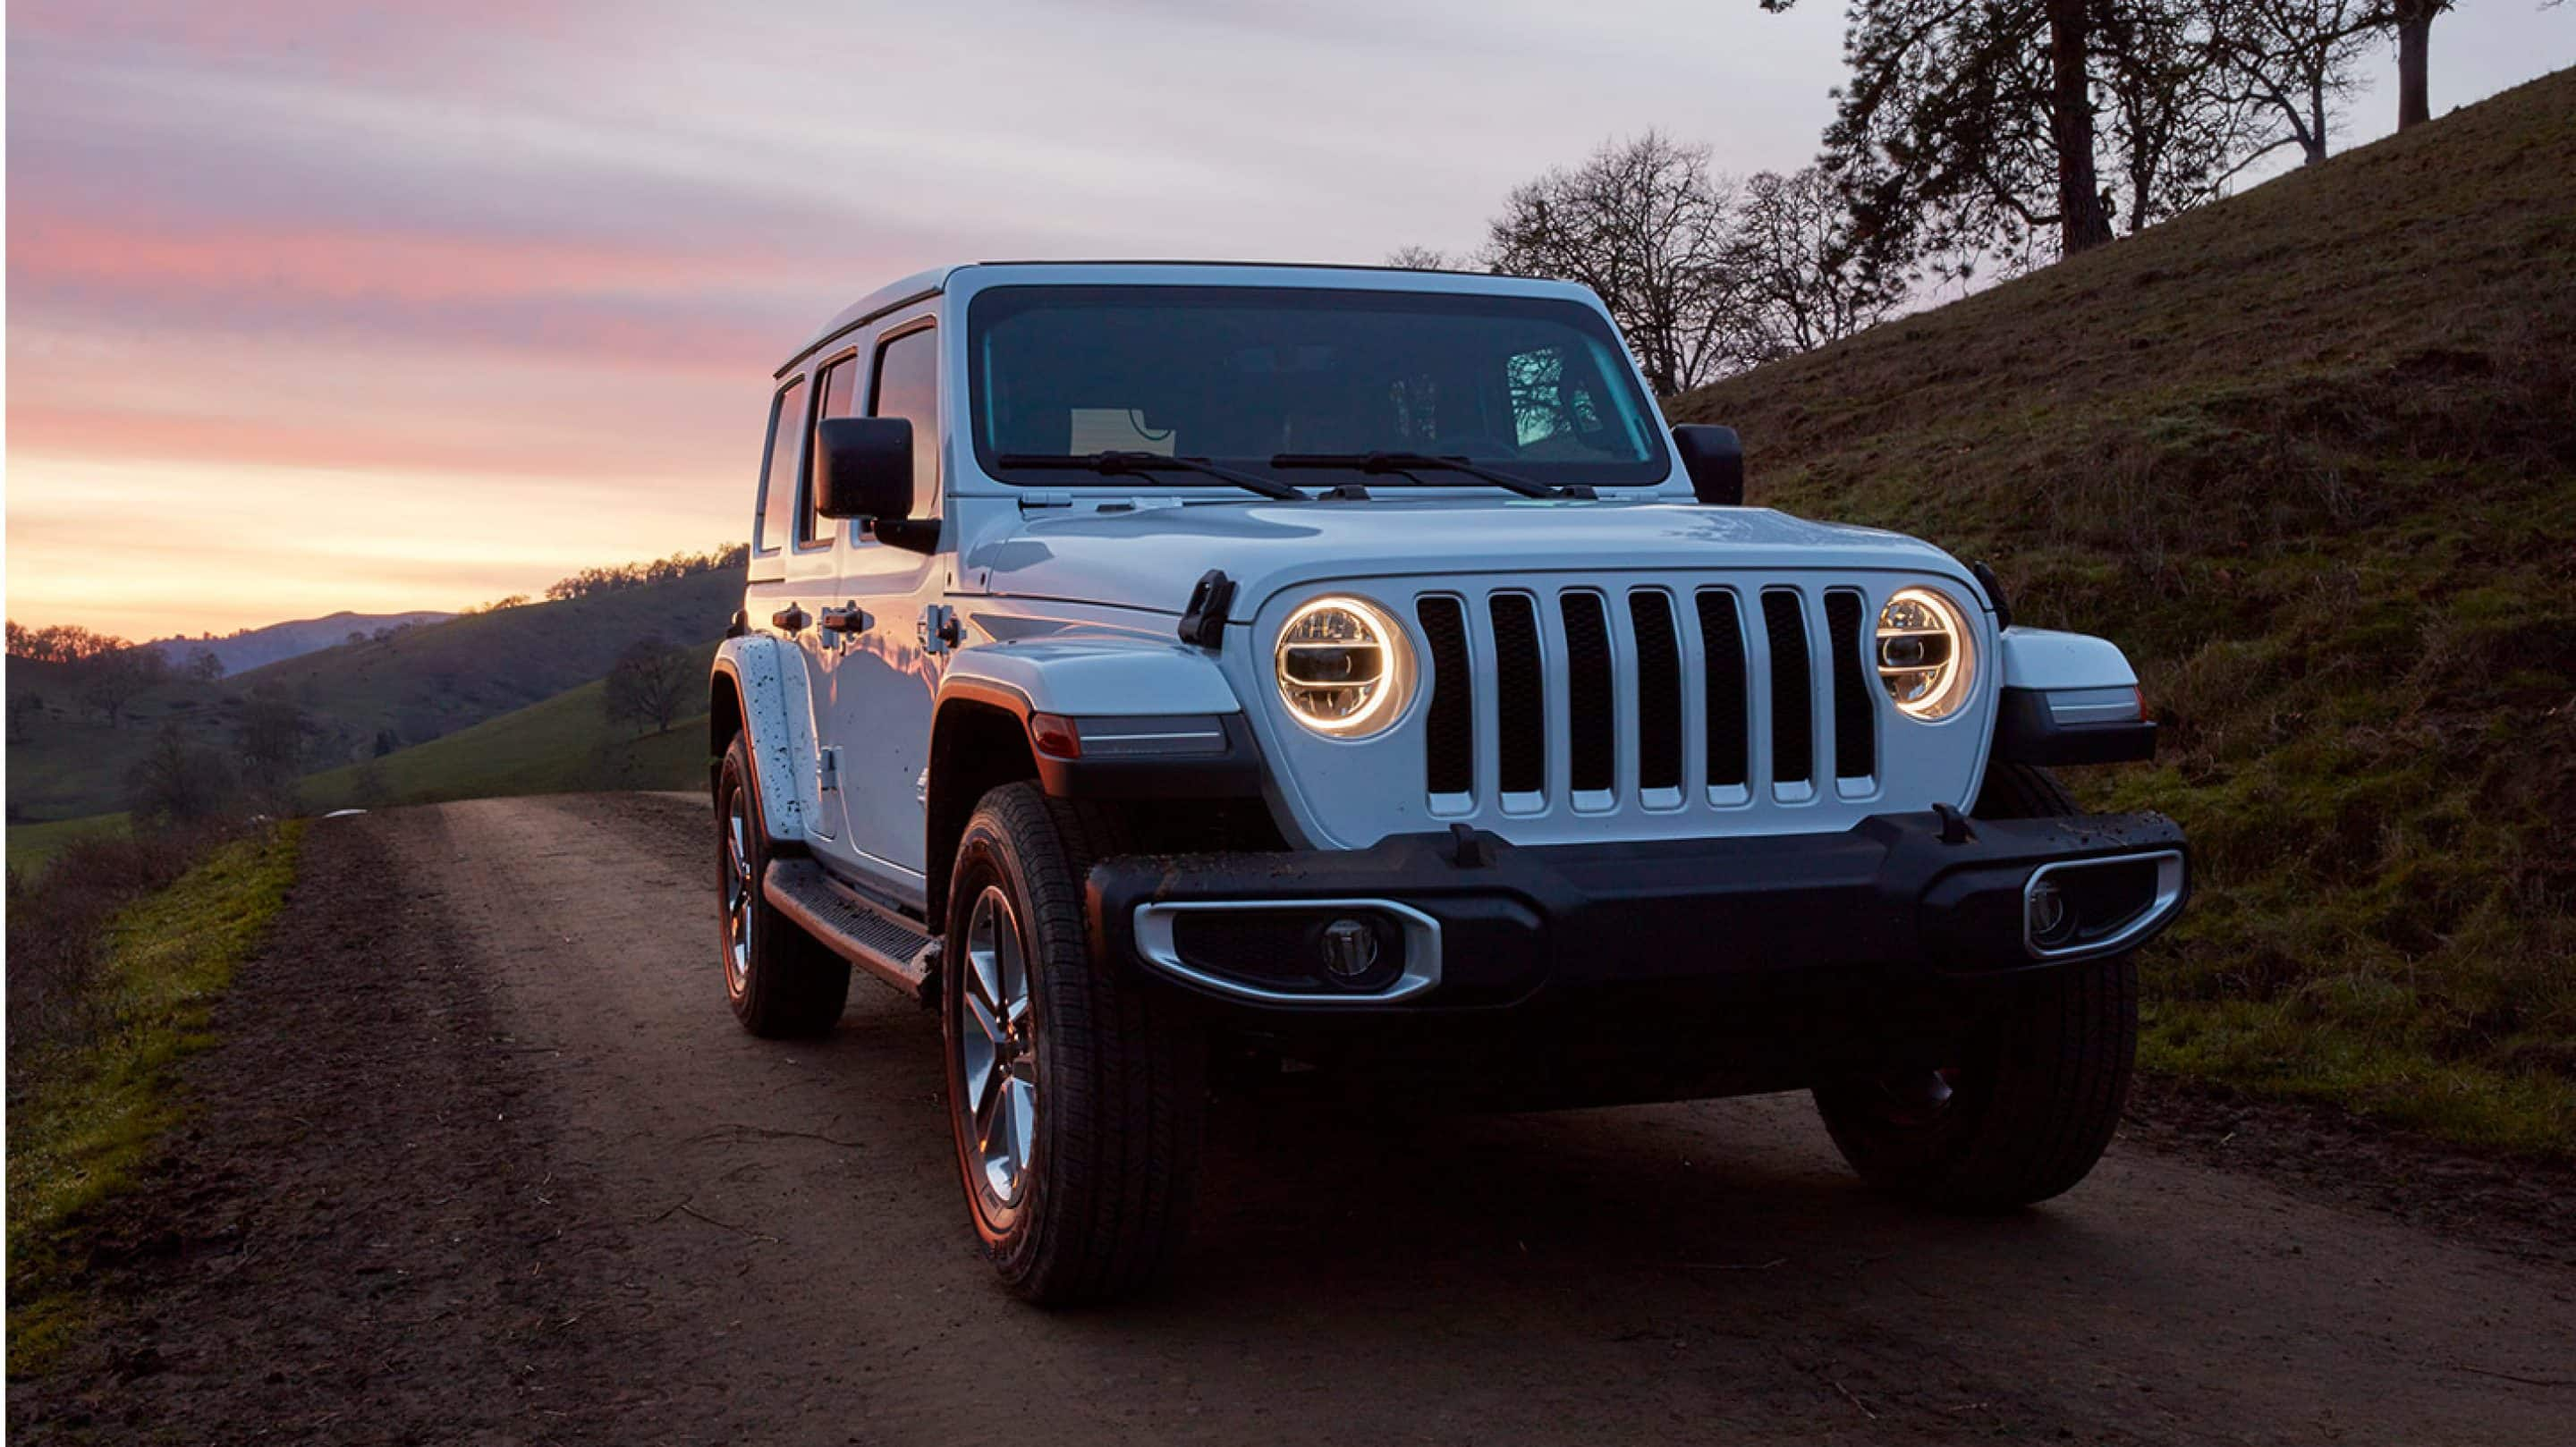 Power and Handling of the 2020 Wrangler